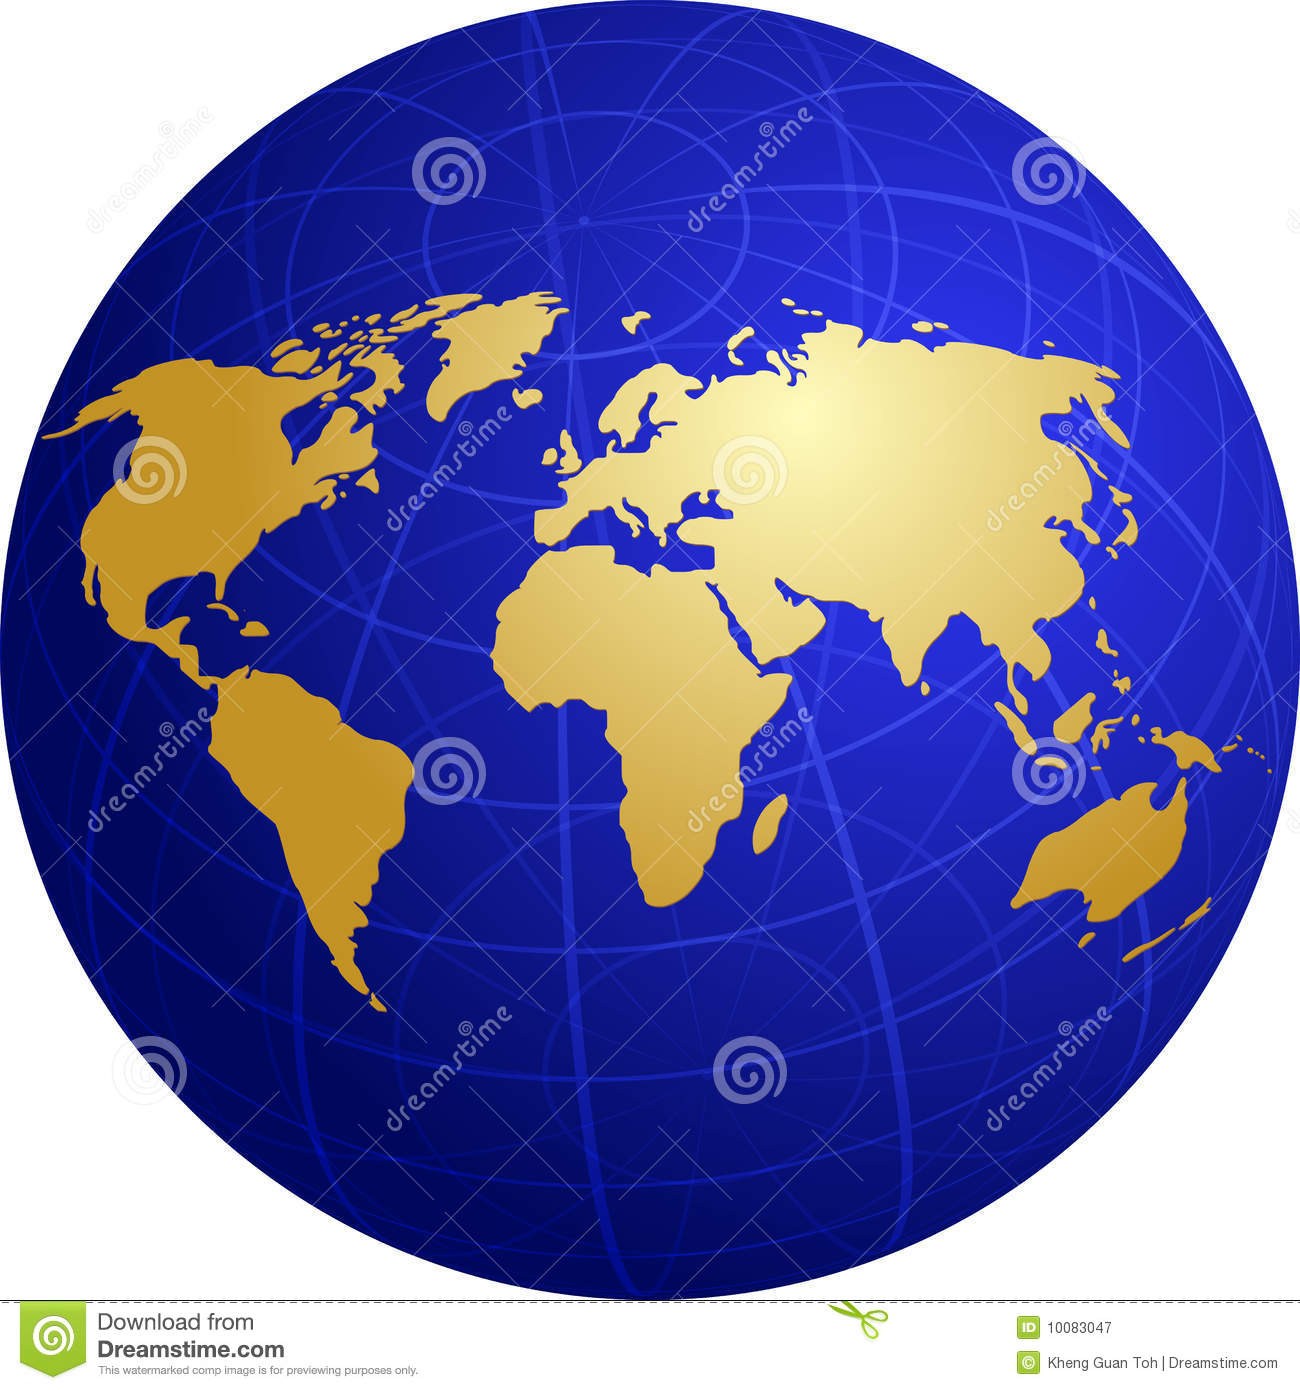 Map Of The World Illustration On Globe Grid Stock